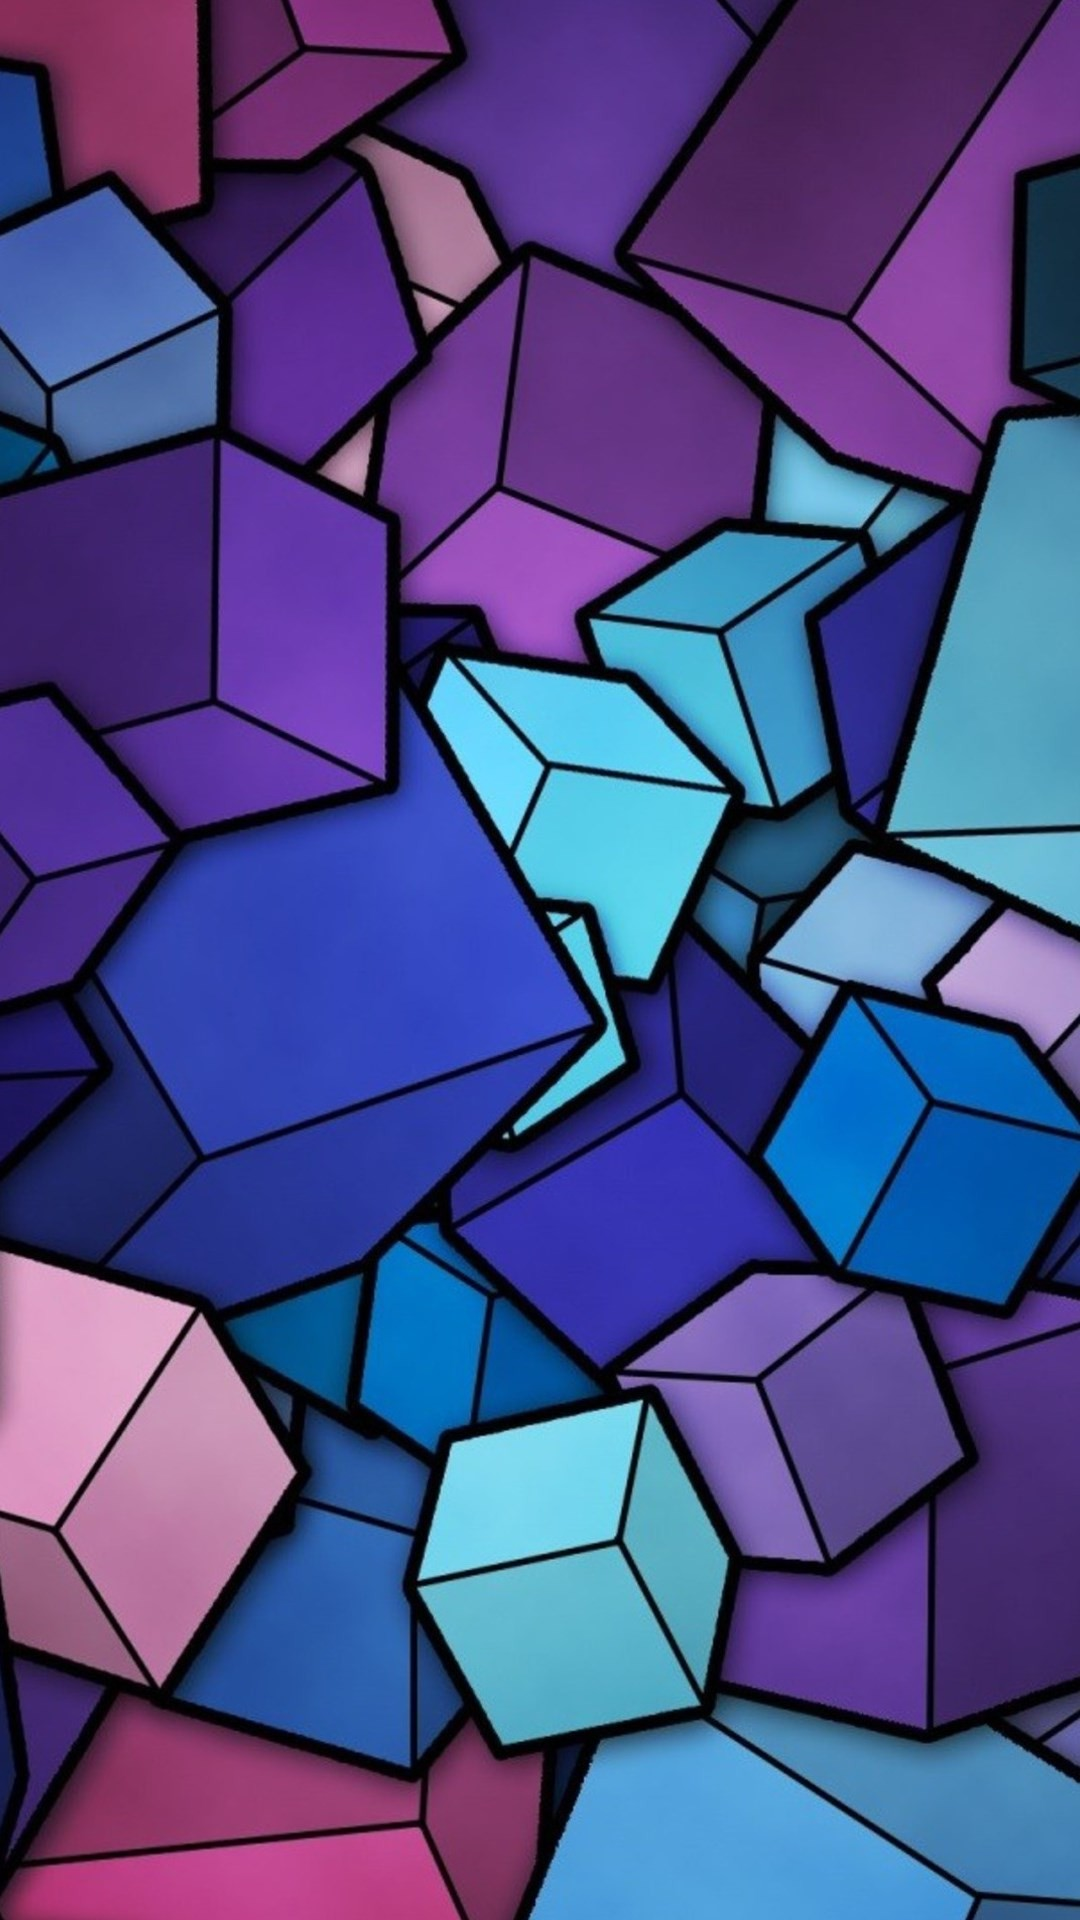 1080x1920 Abstract Blue Cyan Purple Cubes Android Wallpaper ...